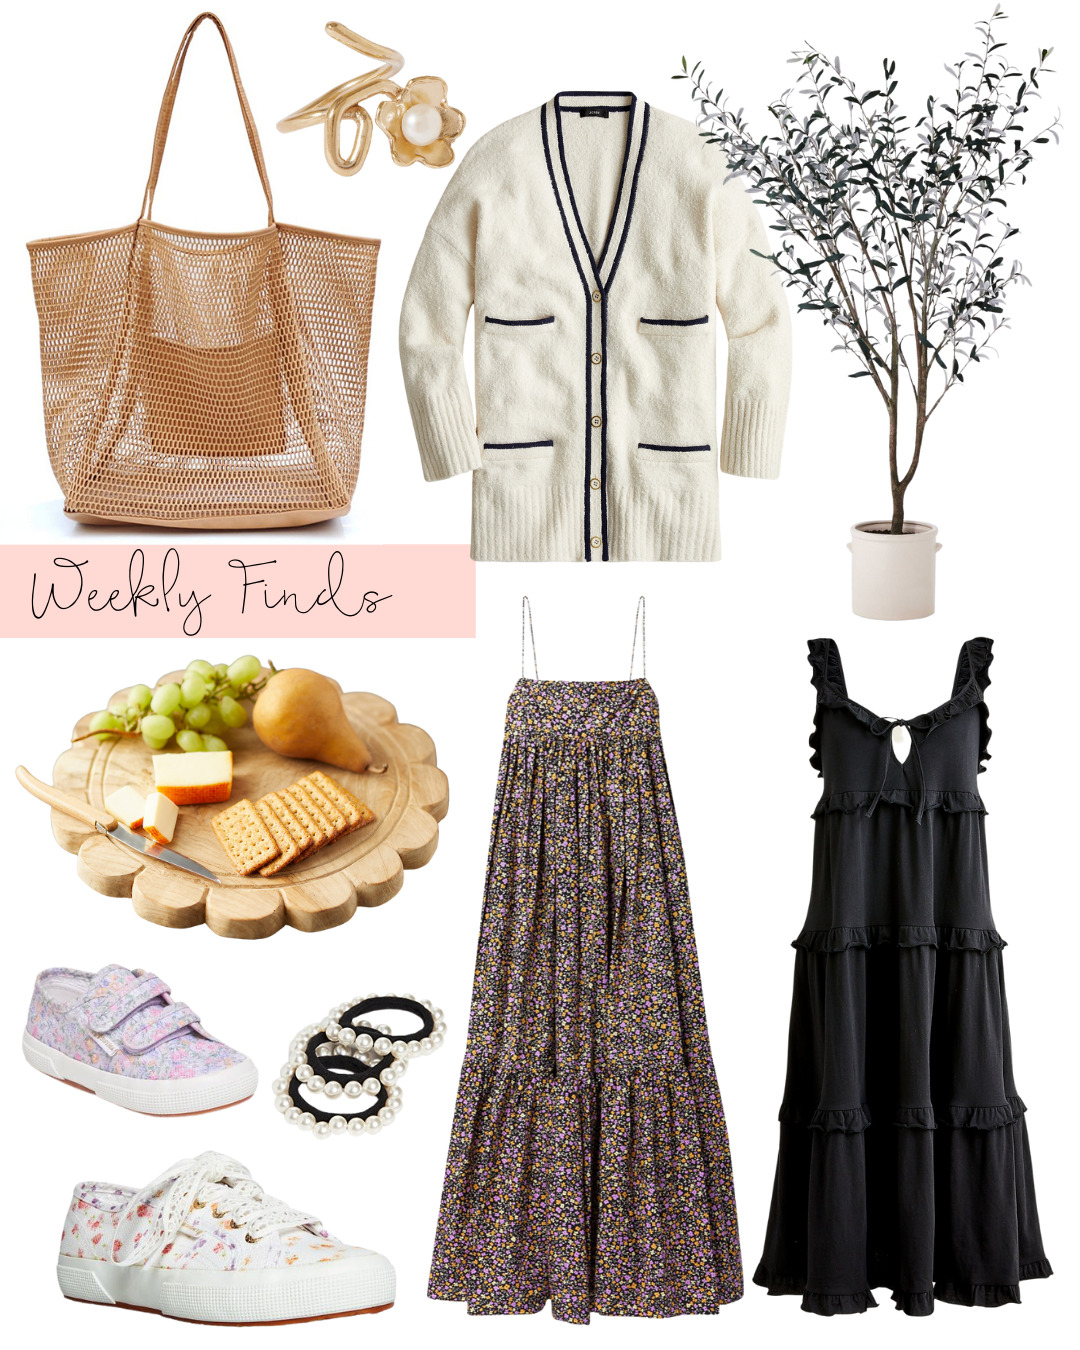 Weekly Finds + The Chicest Under $25 Beach Bag - GLITTERINC.COM